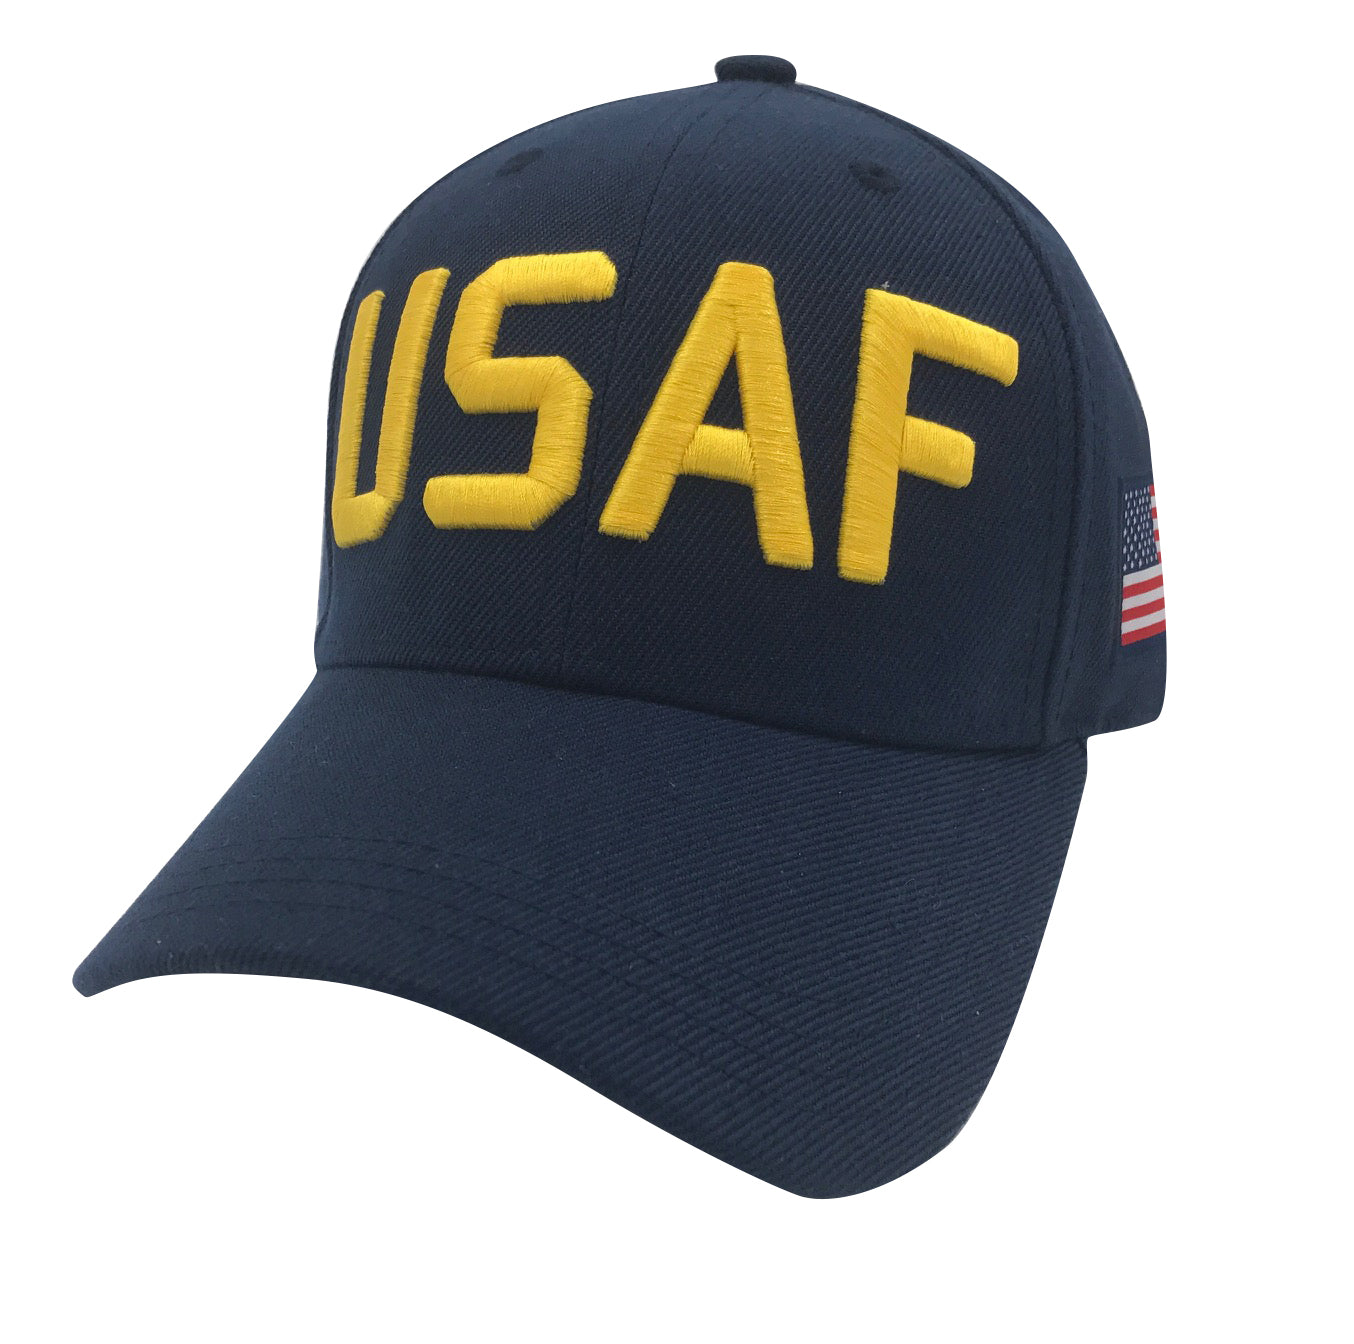 USAF Acrylic Cap - Navy by Icon Sports